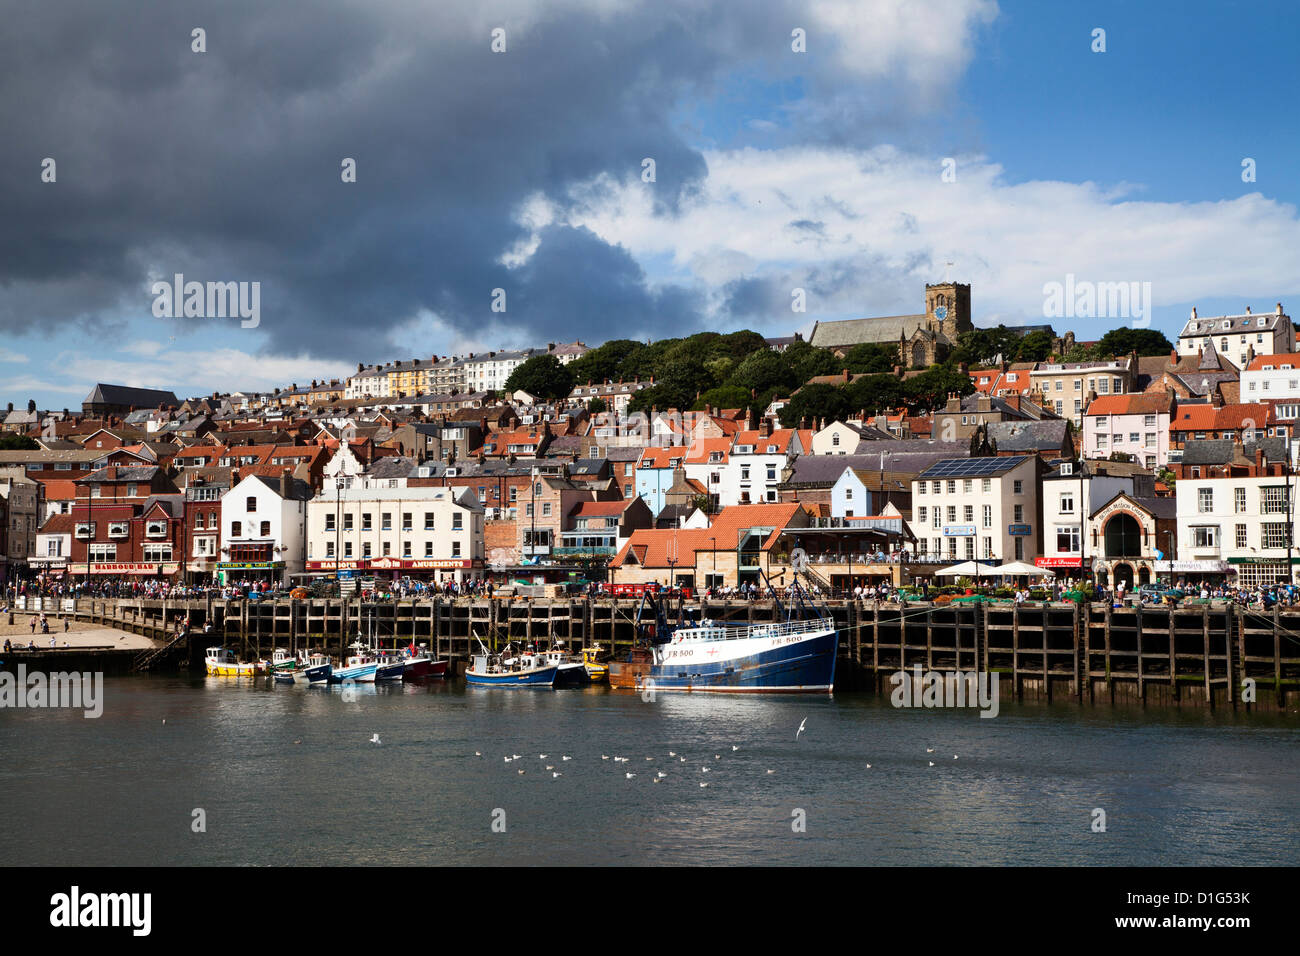 The Harbour at Scarborough, North Yorkshire, Yorkshire, England, United Kingdom, Europe - Stock Image